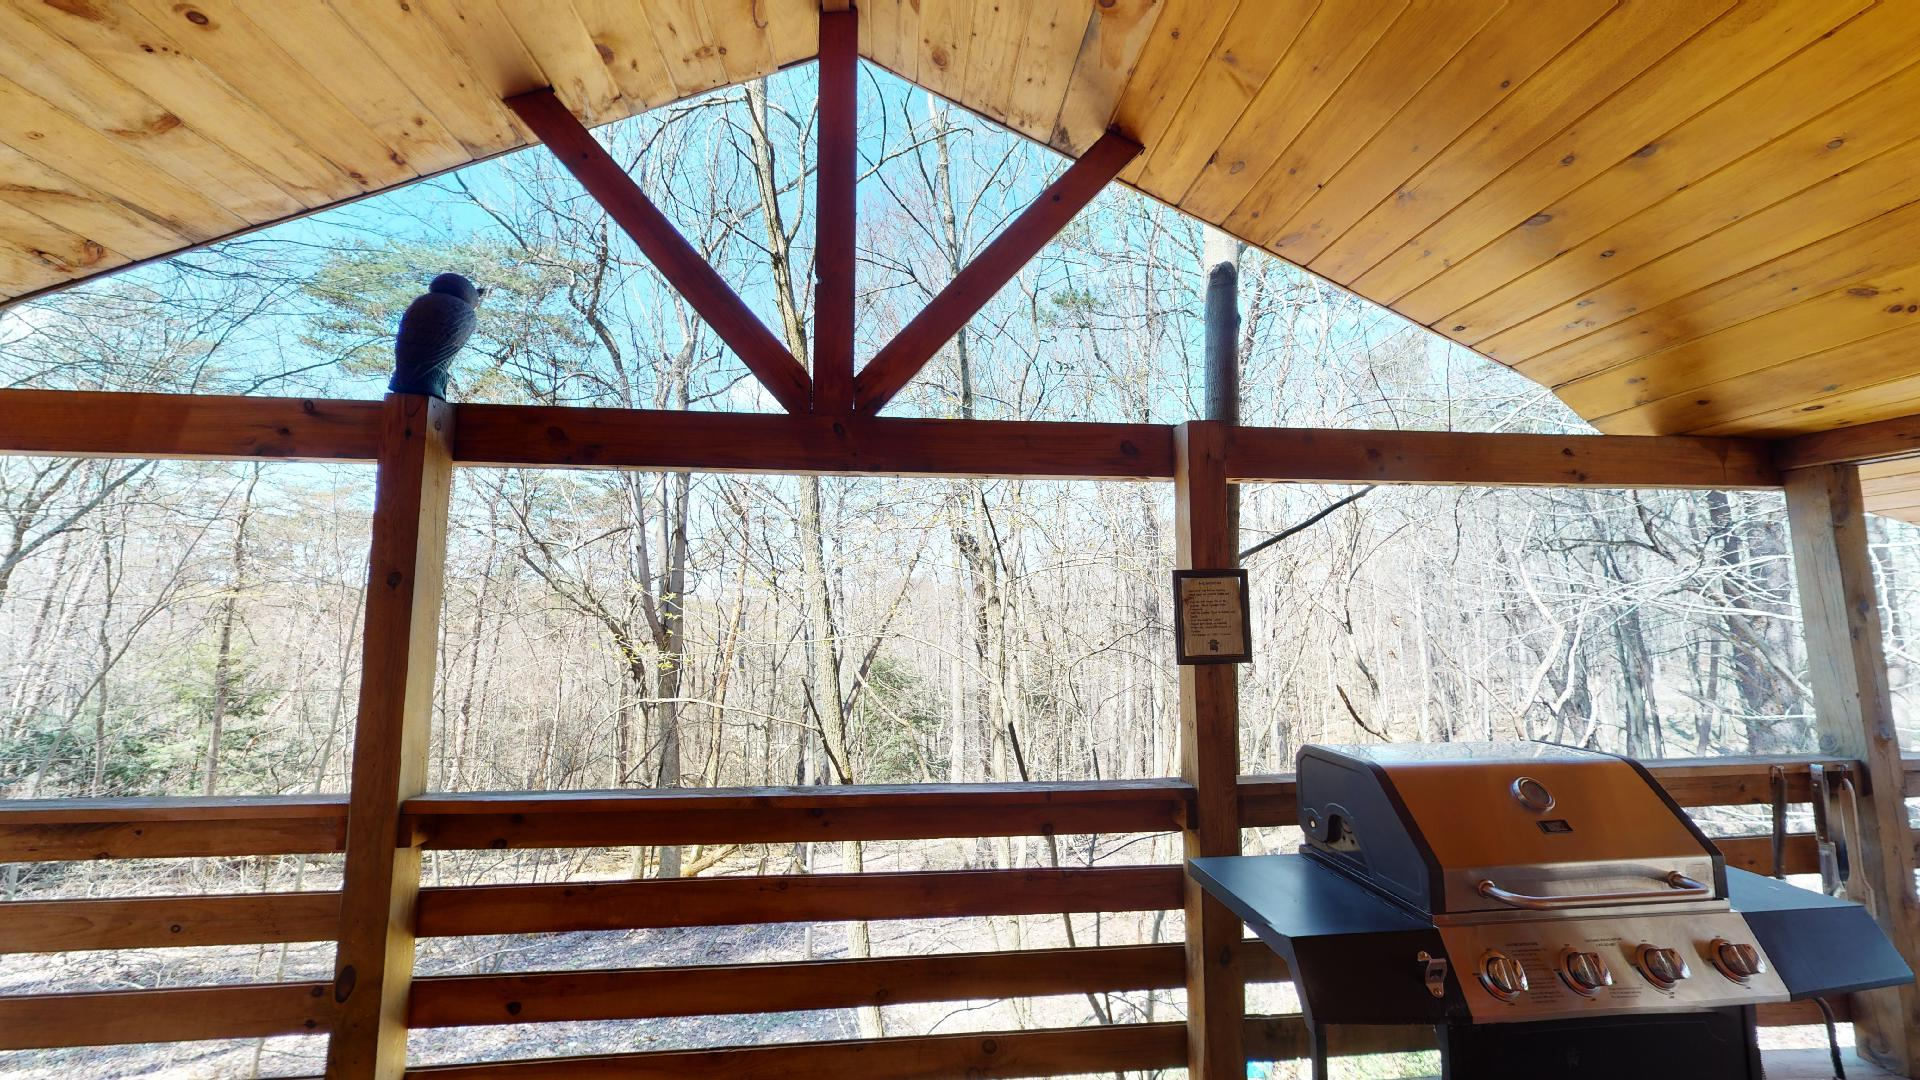 The Overlook - Covered porch and propane grill